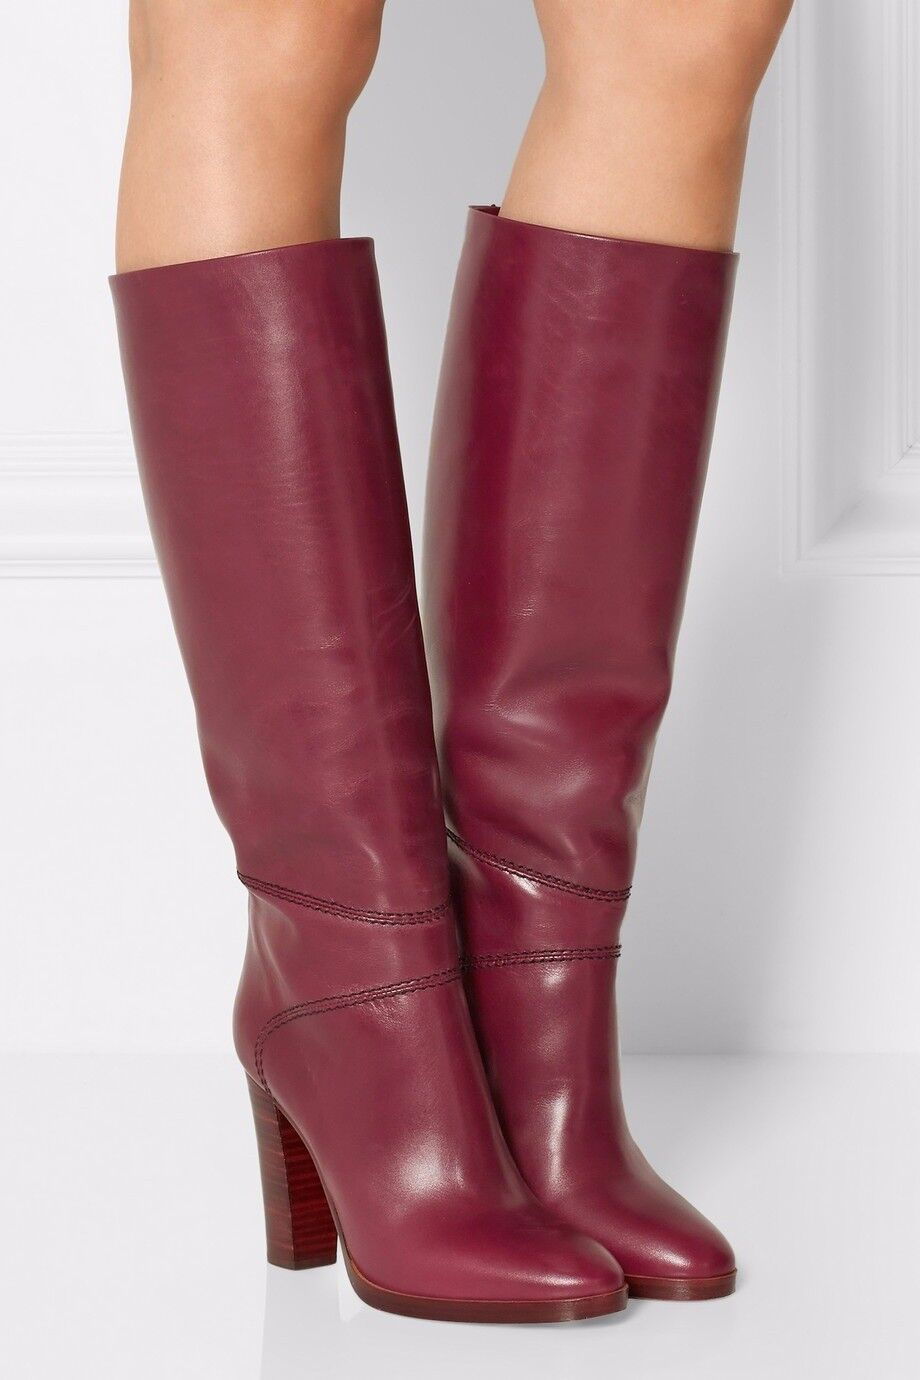 Vintage Women's Knee High Boots Block High Heels Round Toe Knight Boot shoes